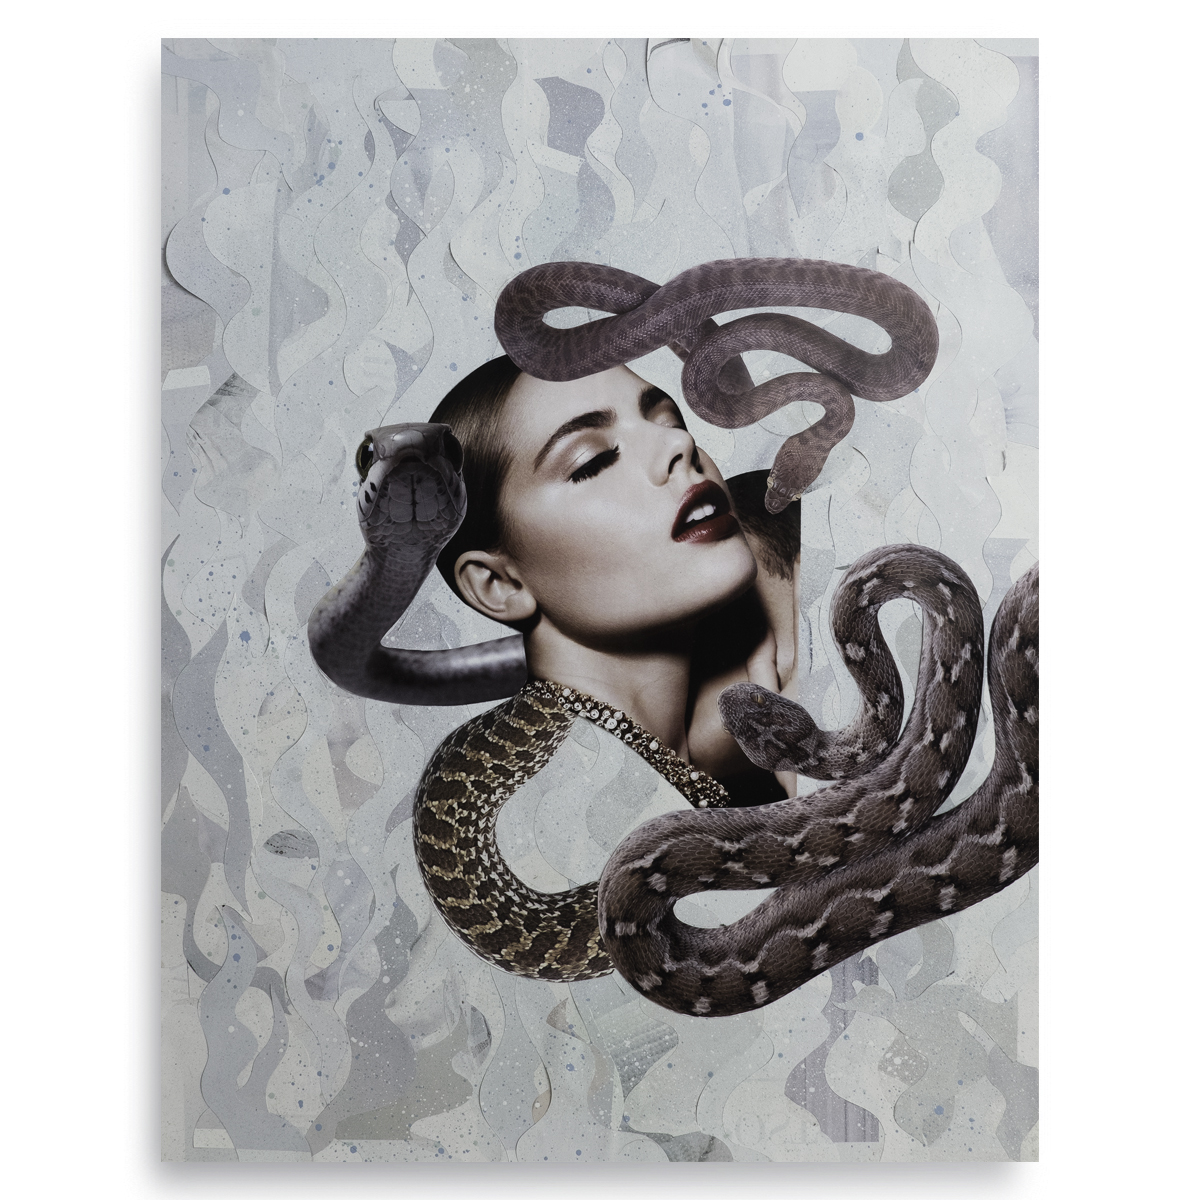 Female head surrounded by snakes.